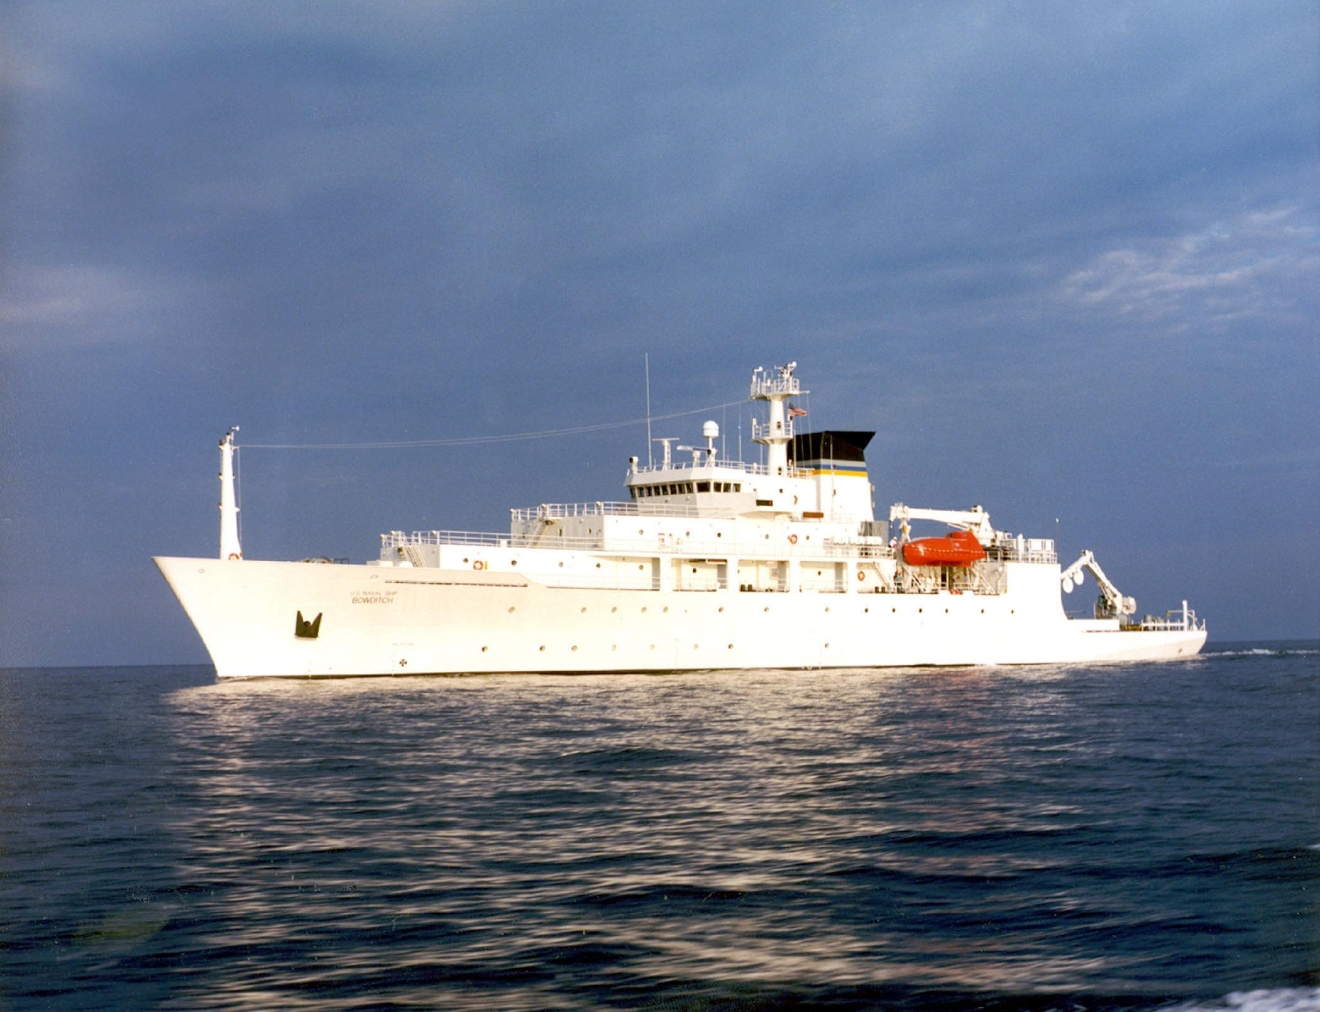 In this undated photo released by the U.S. Navy Visual News Service, the USNS Bowditch, a T-AGS 60 Class Oceanographic Survey Ship, sails in open water. (CHINFO, Navy Visual News via AP)